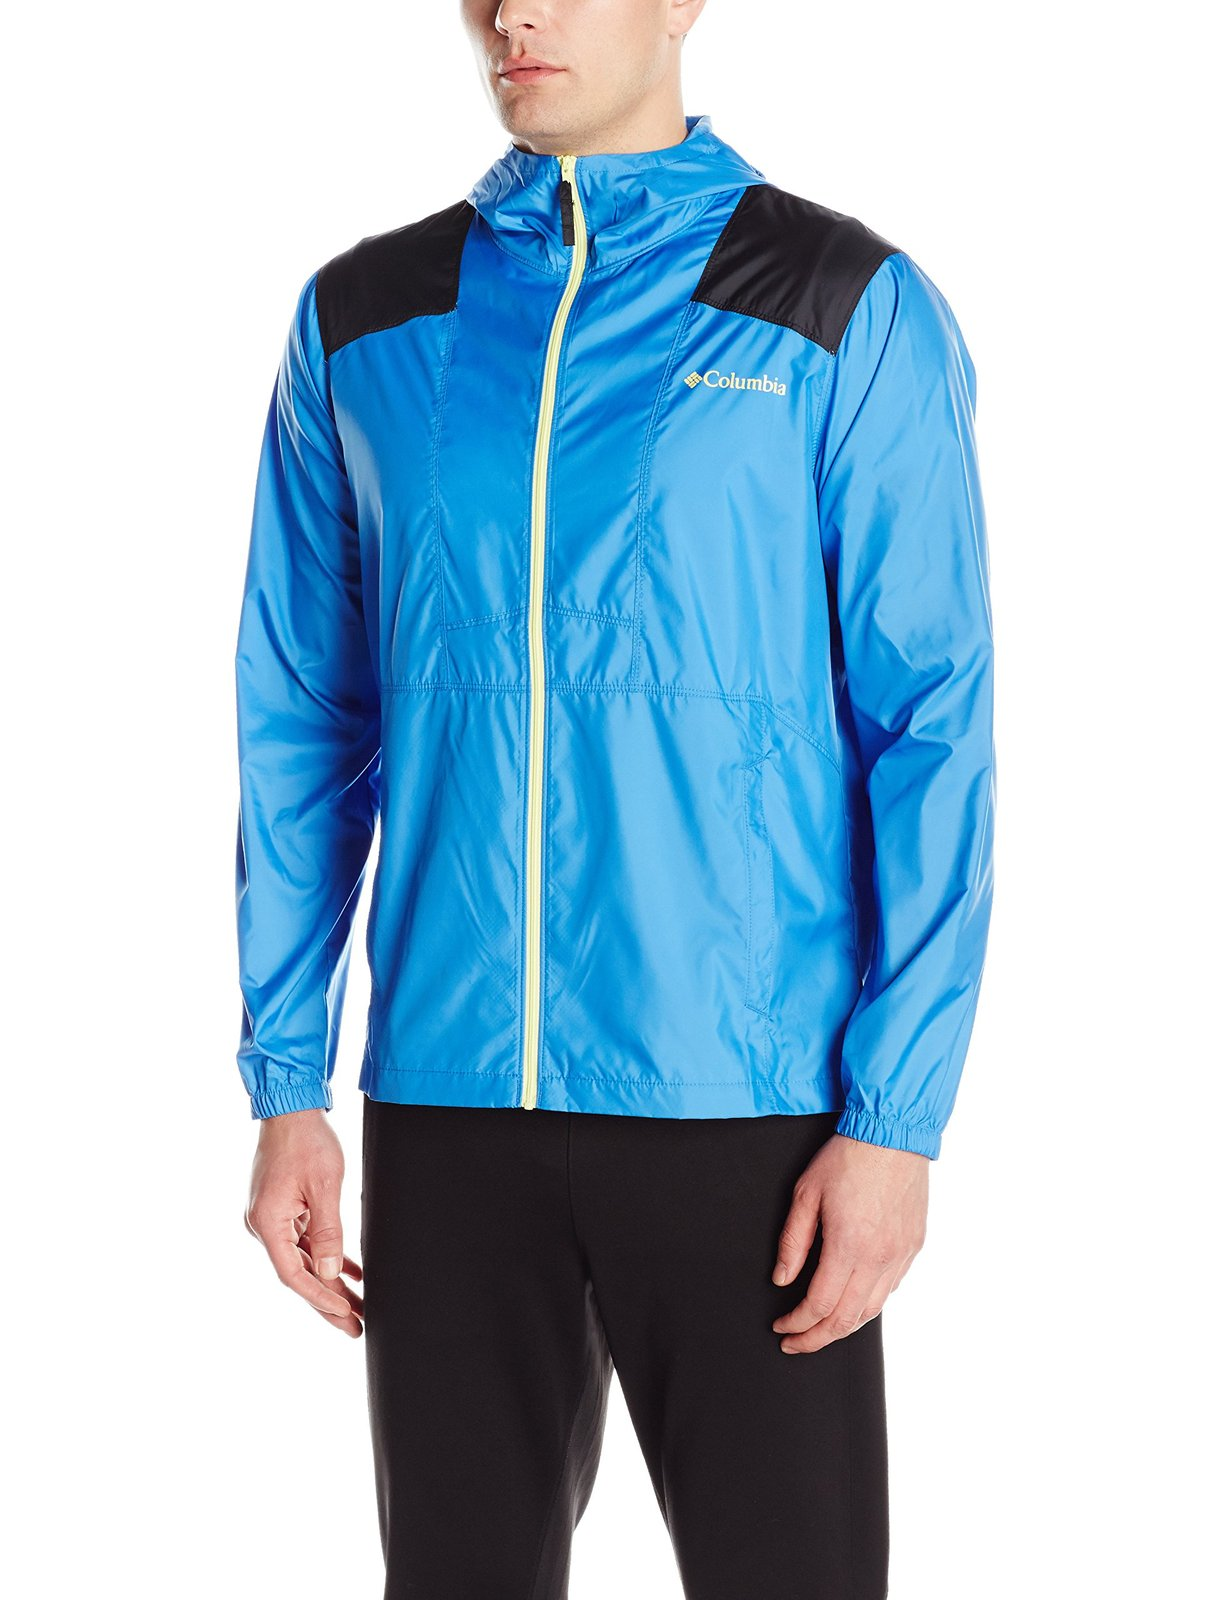 Columbia Men's Flashback Windbreaker, Pacific Blue, Black, Medium